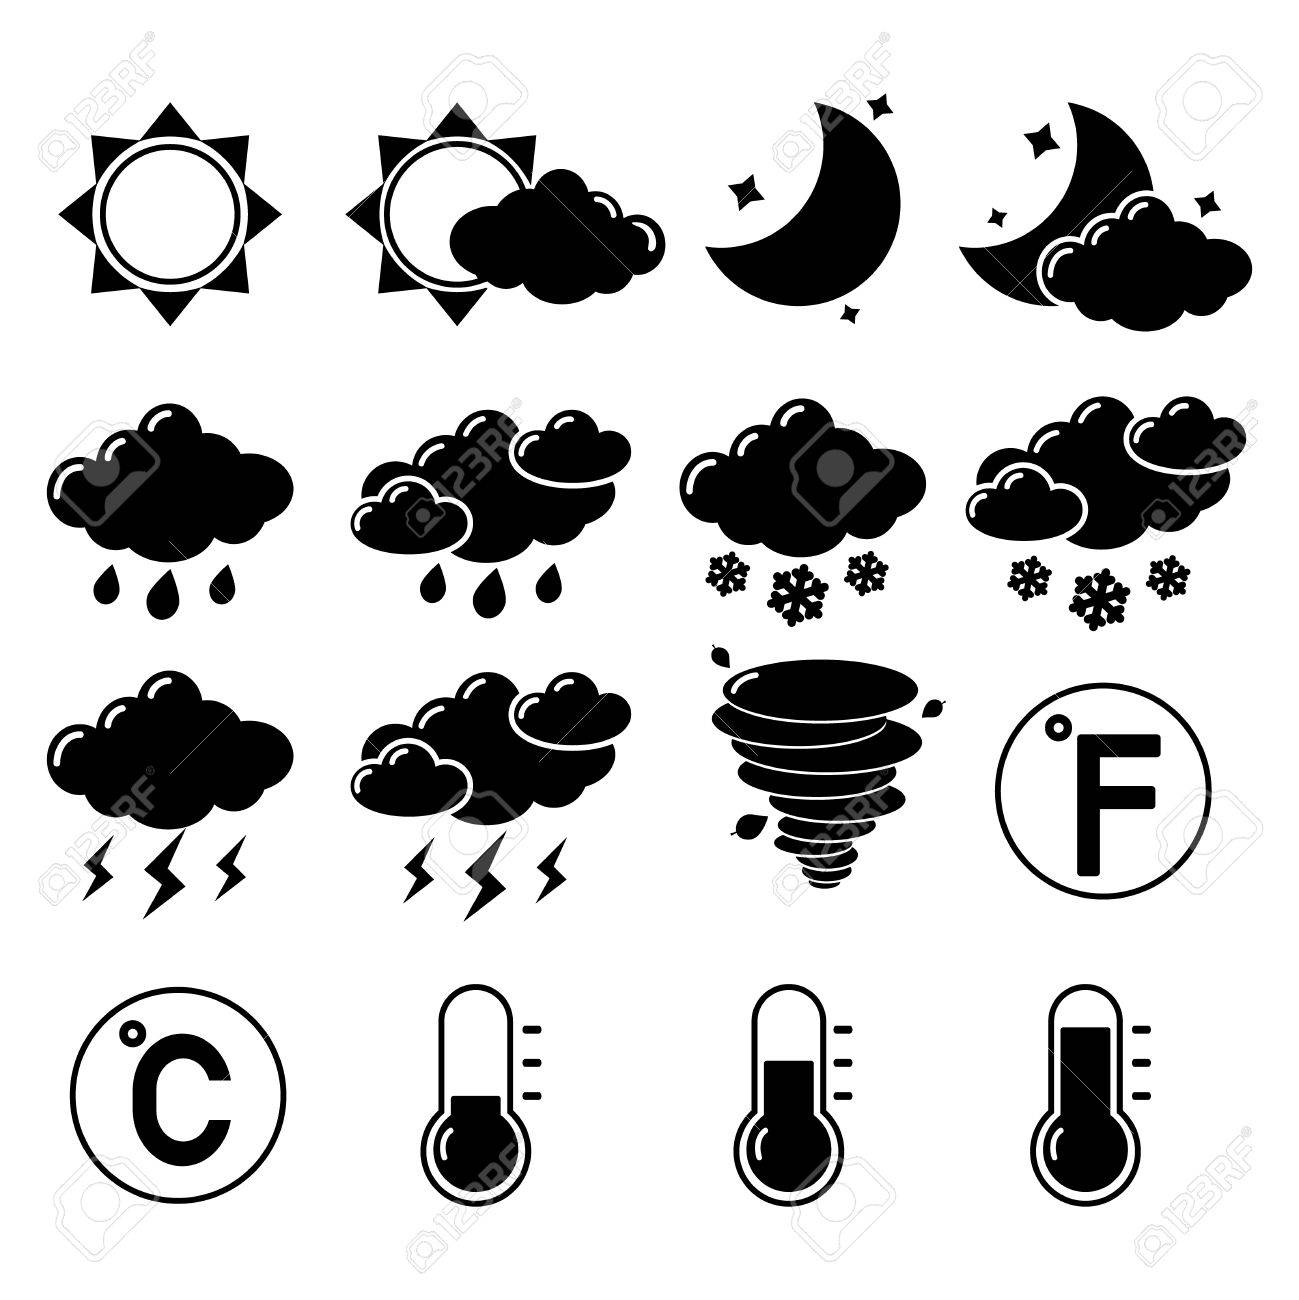 Weather Forecast Symbols Black Pictogram Set Of Hot Cold Temperature